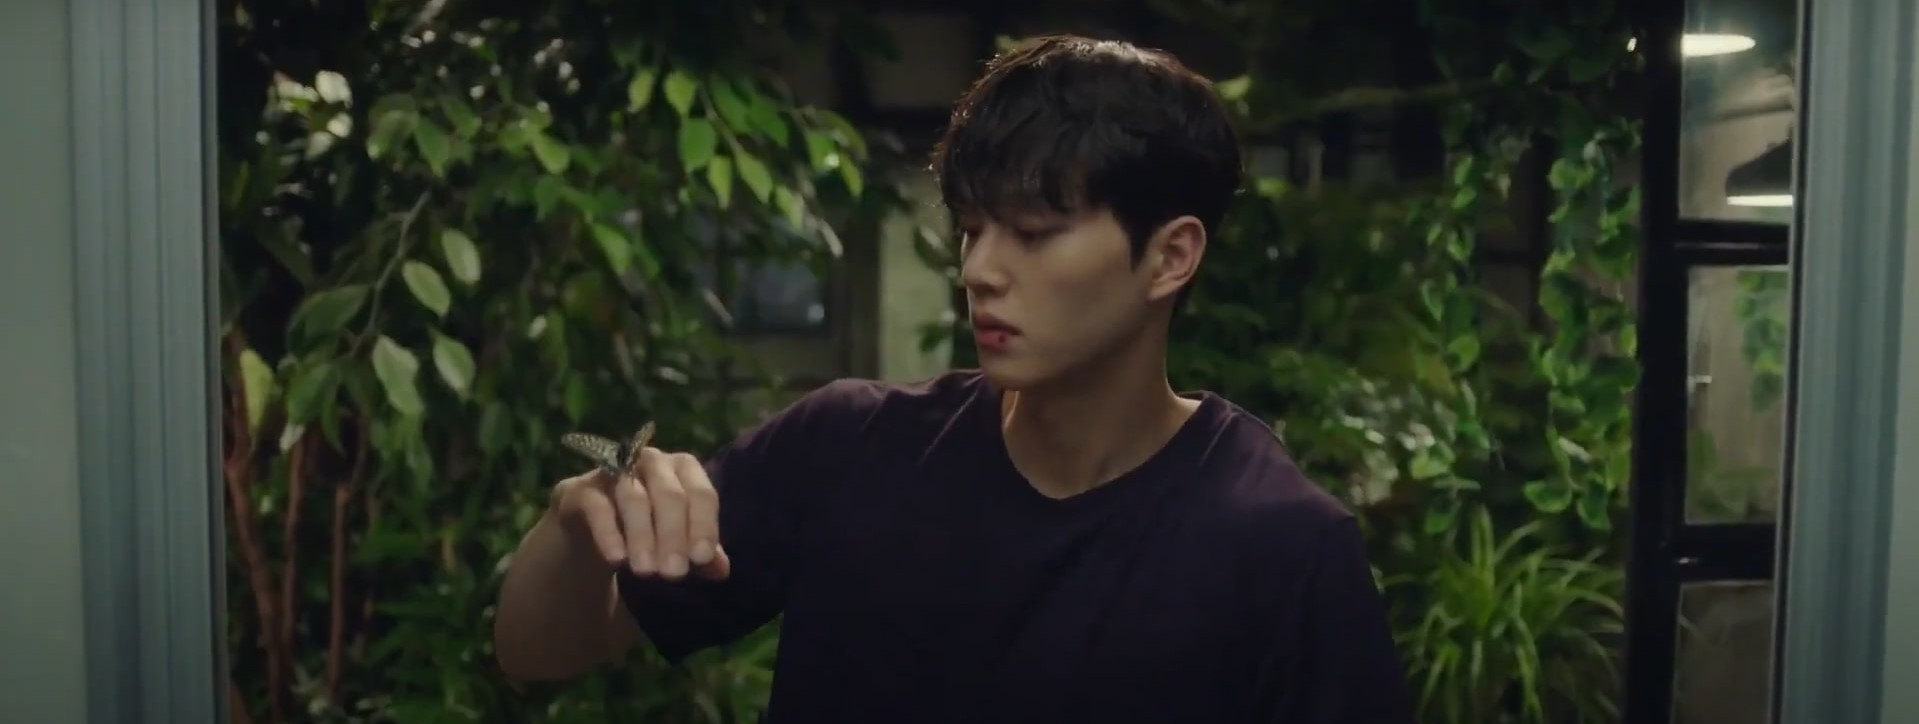 Nevertheless Episode 5 Release Date, Recap, Spoilers, How To Watch And What We Can Expect